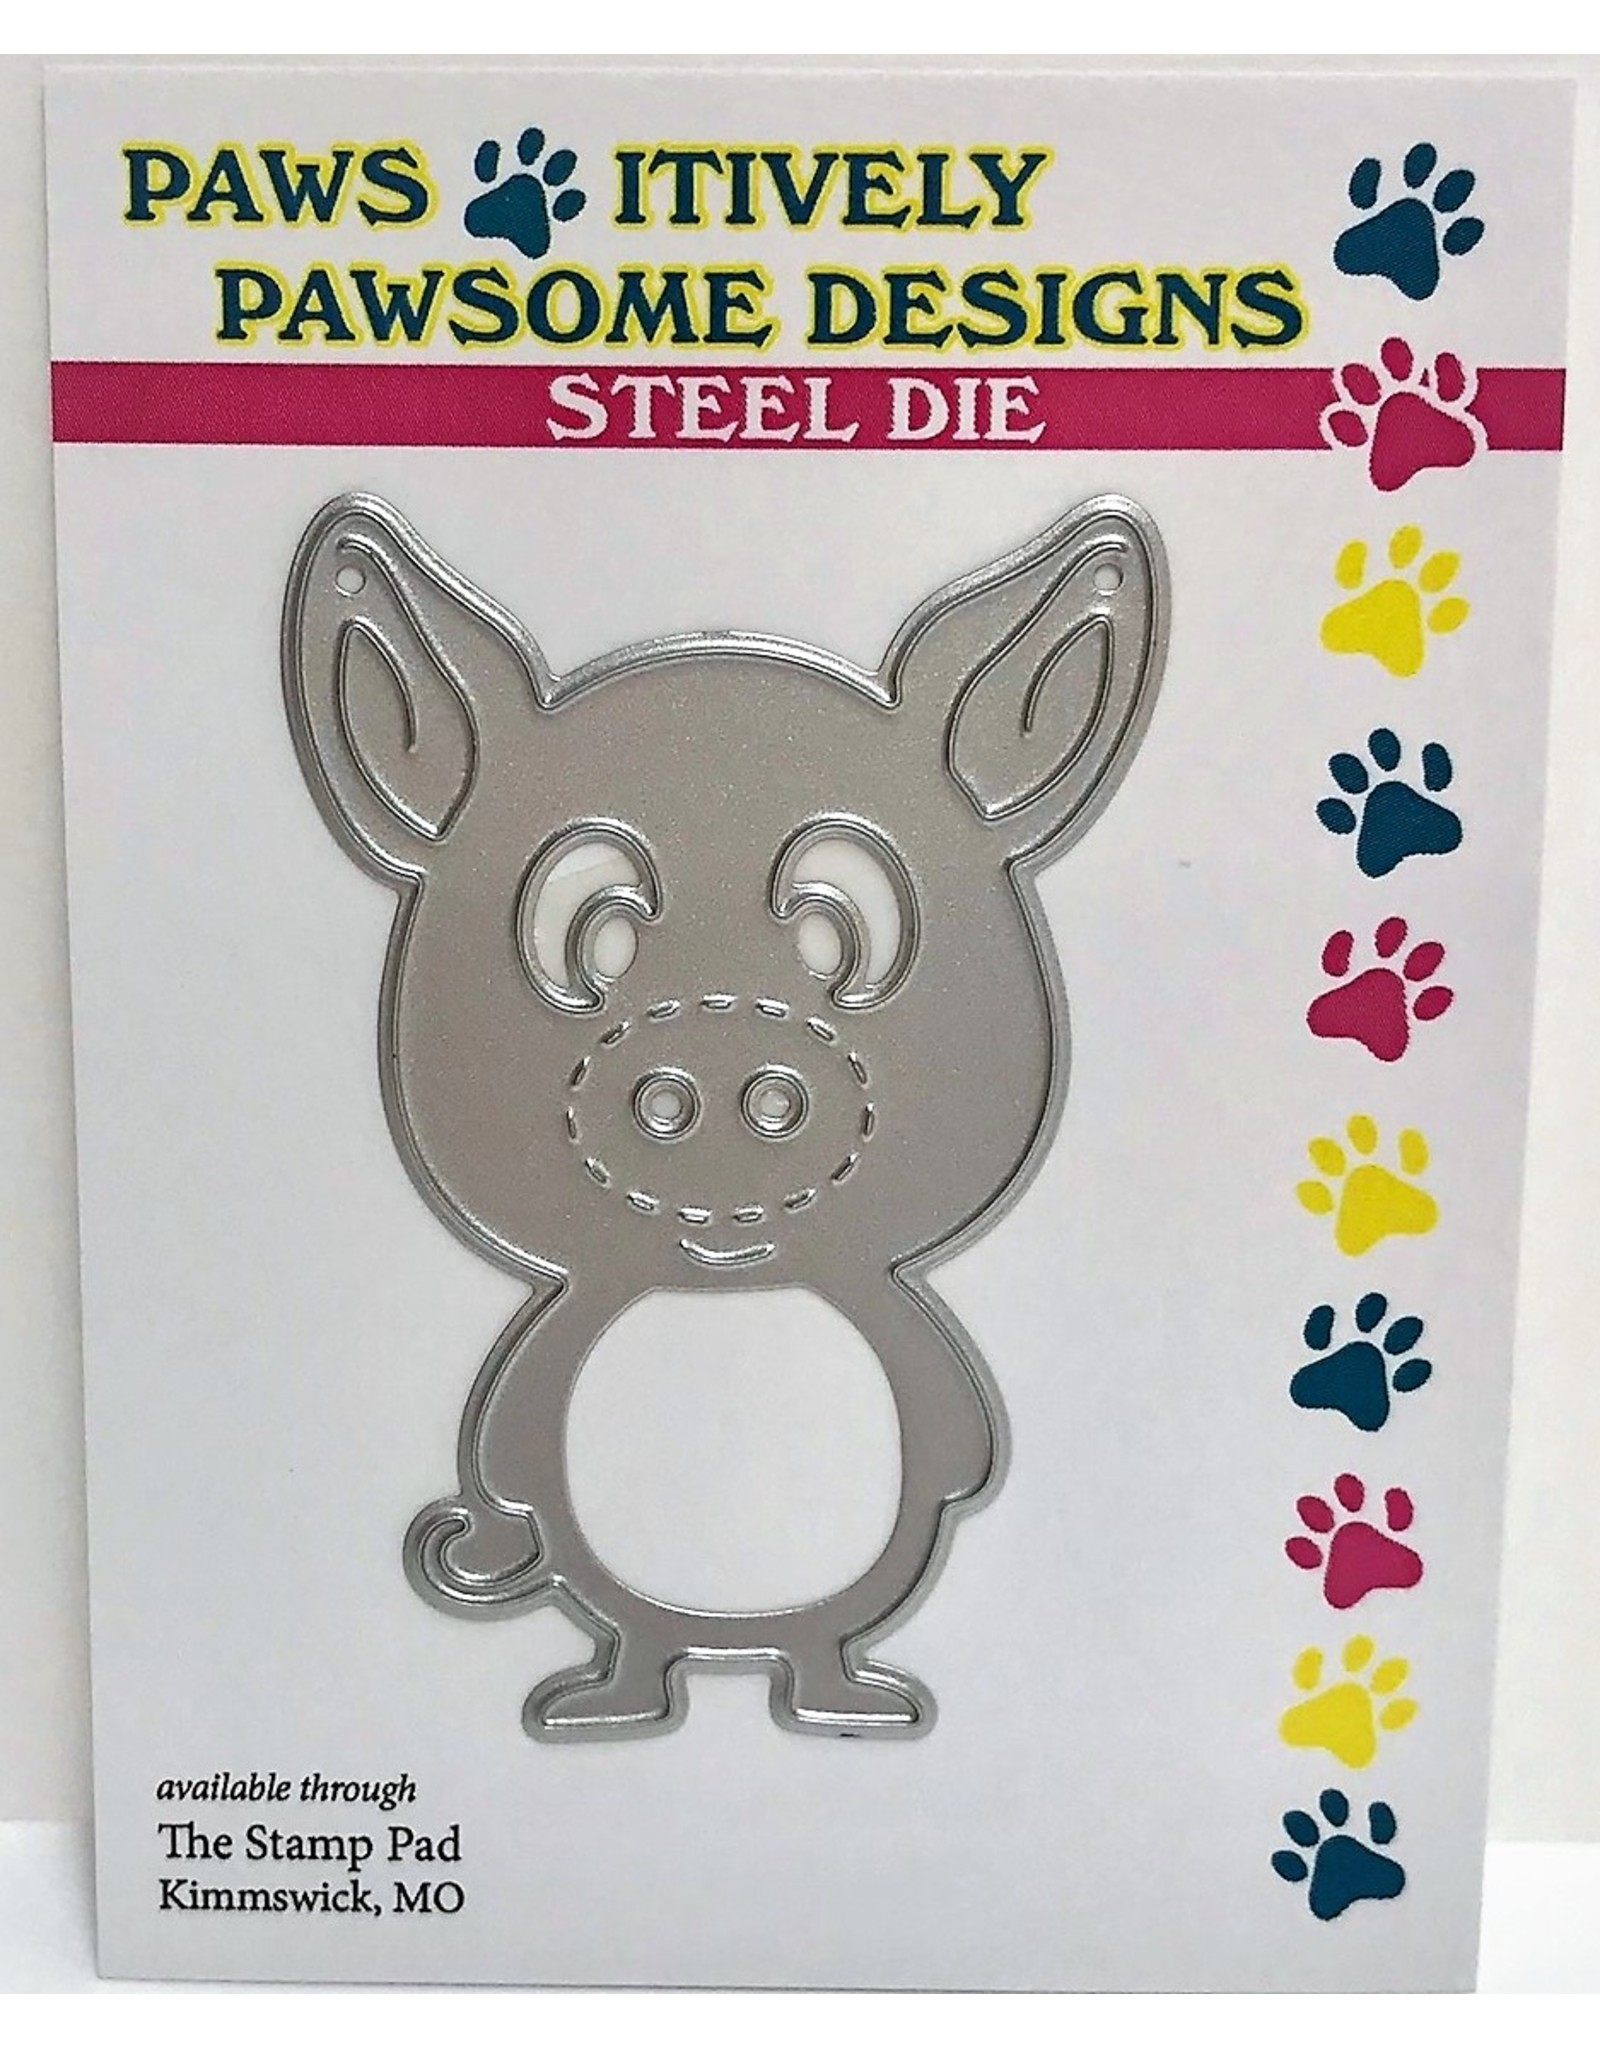 Paws-Itively Pawsome Designs Paulie P. Iglet - Die